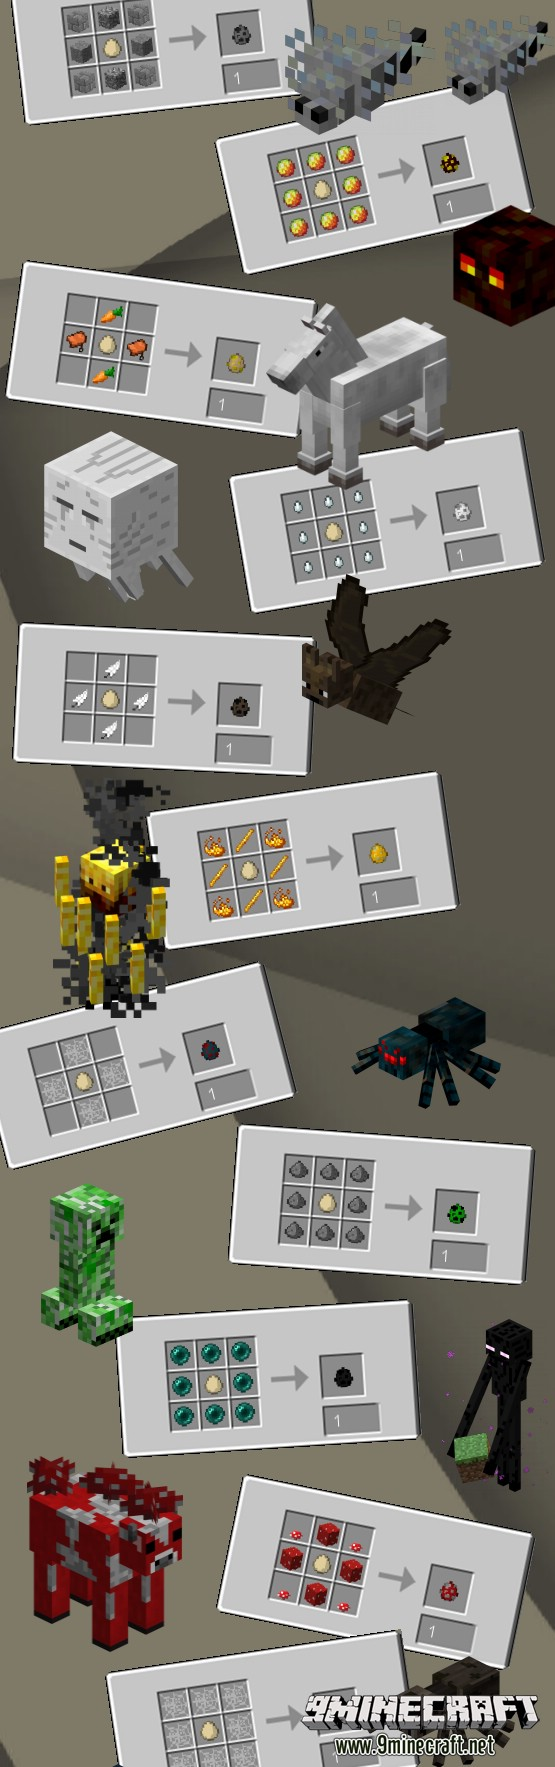 Uncrafted-Mod-5.jpg